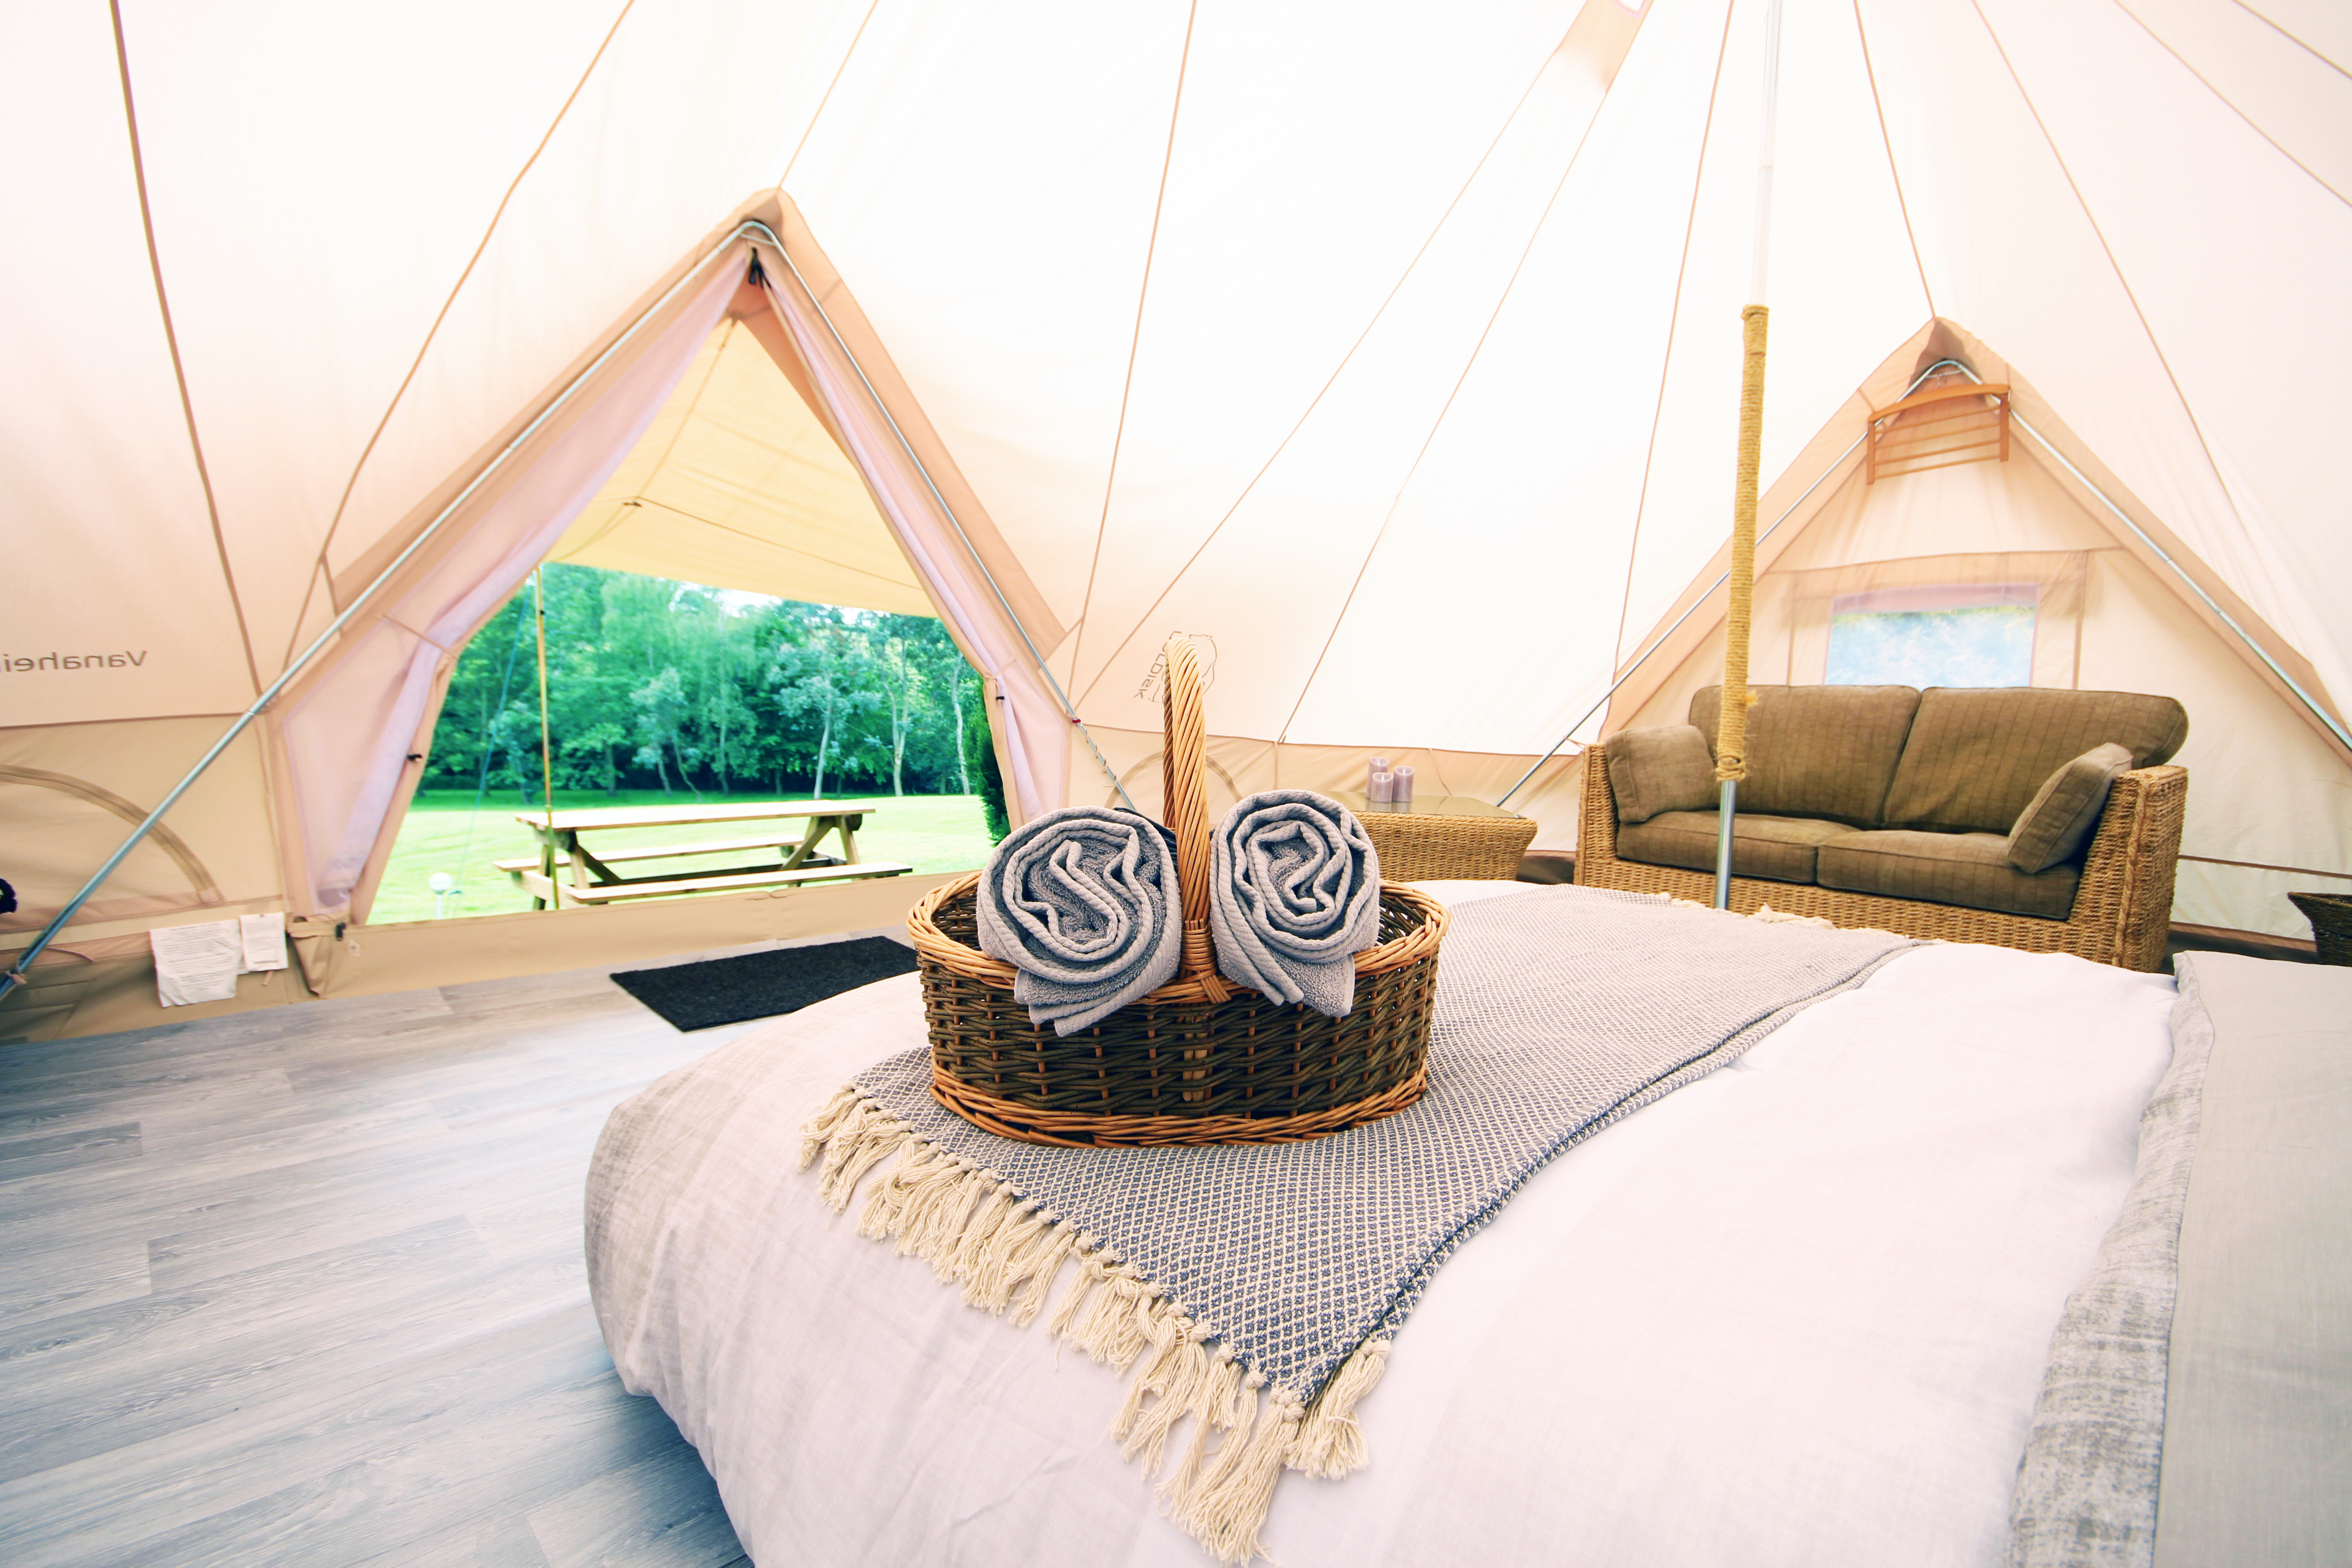 Weekend Glamping and BBQ for 8 : £120pp